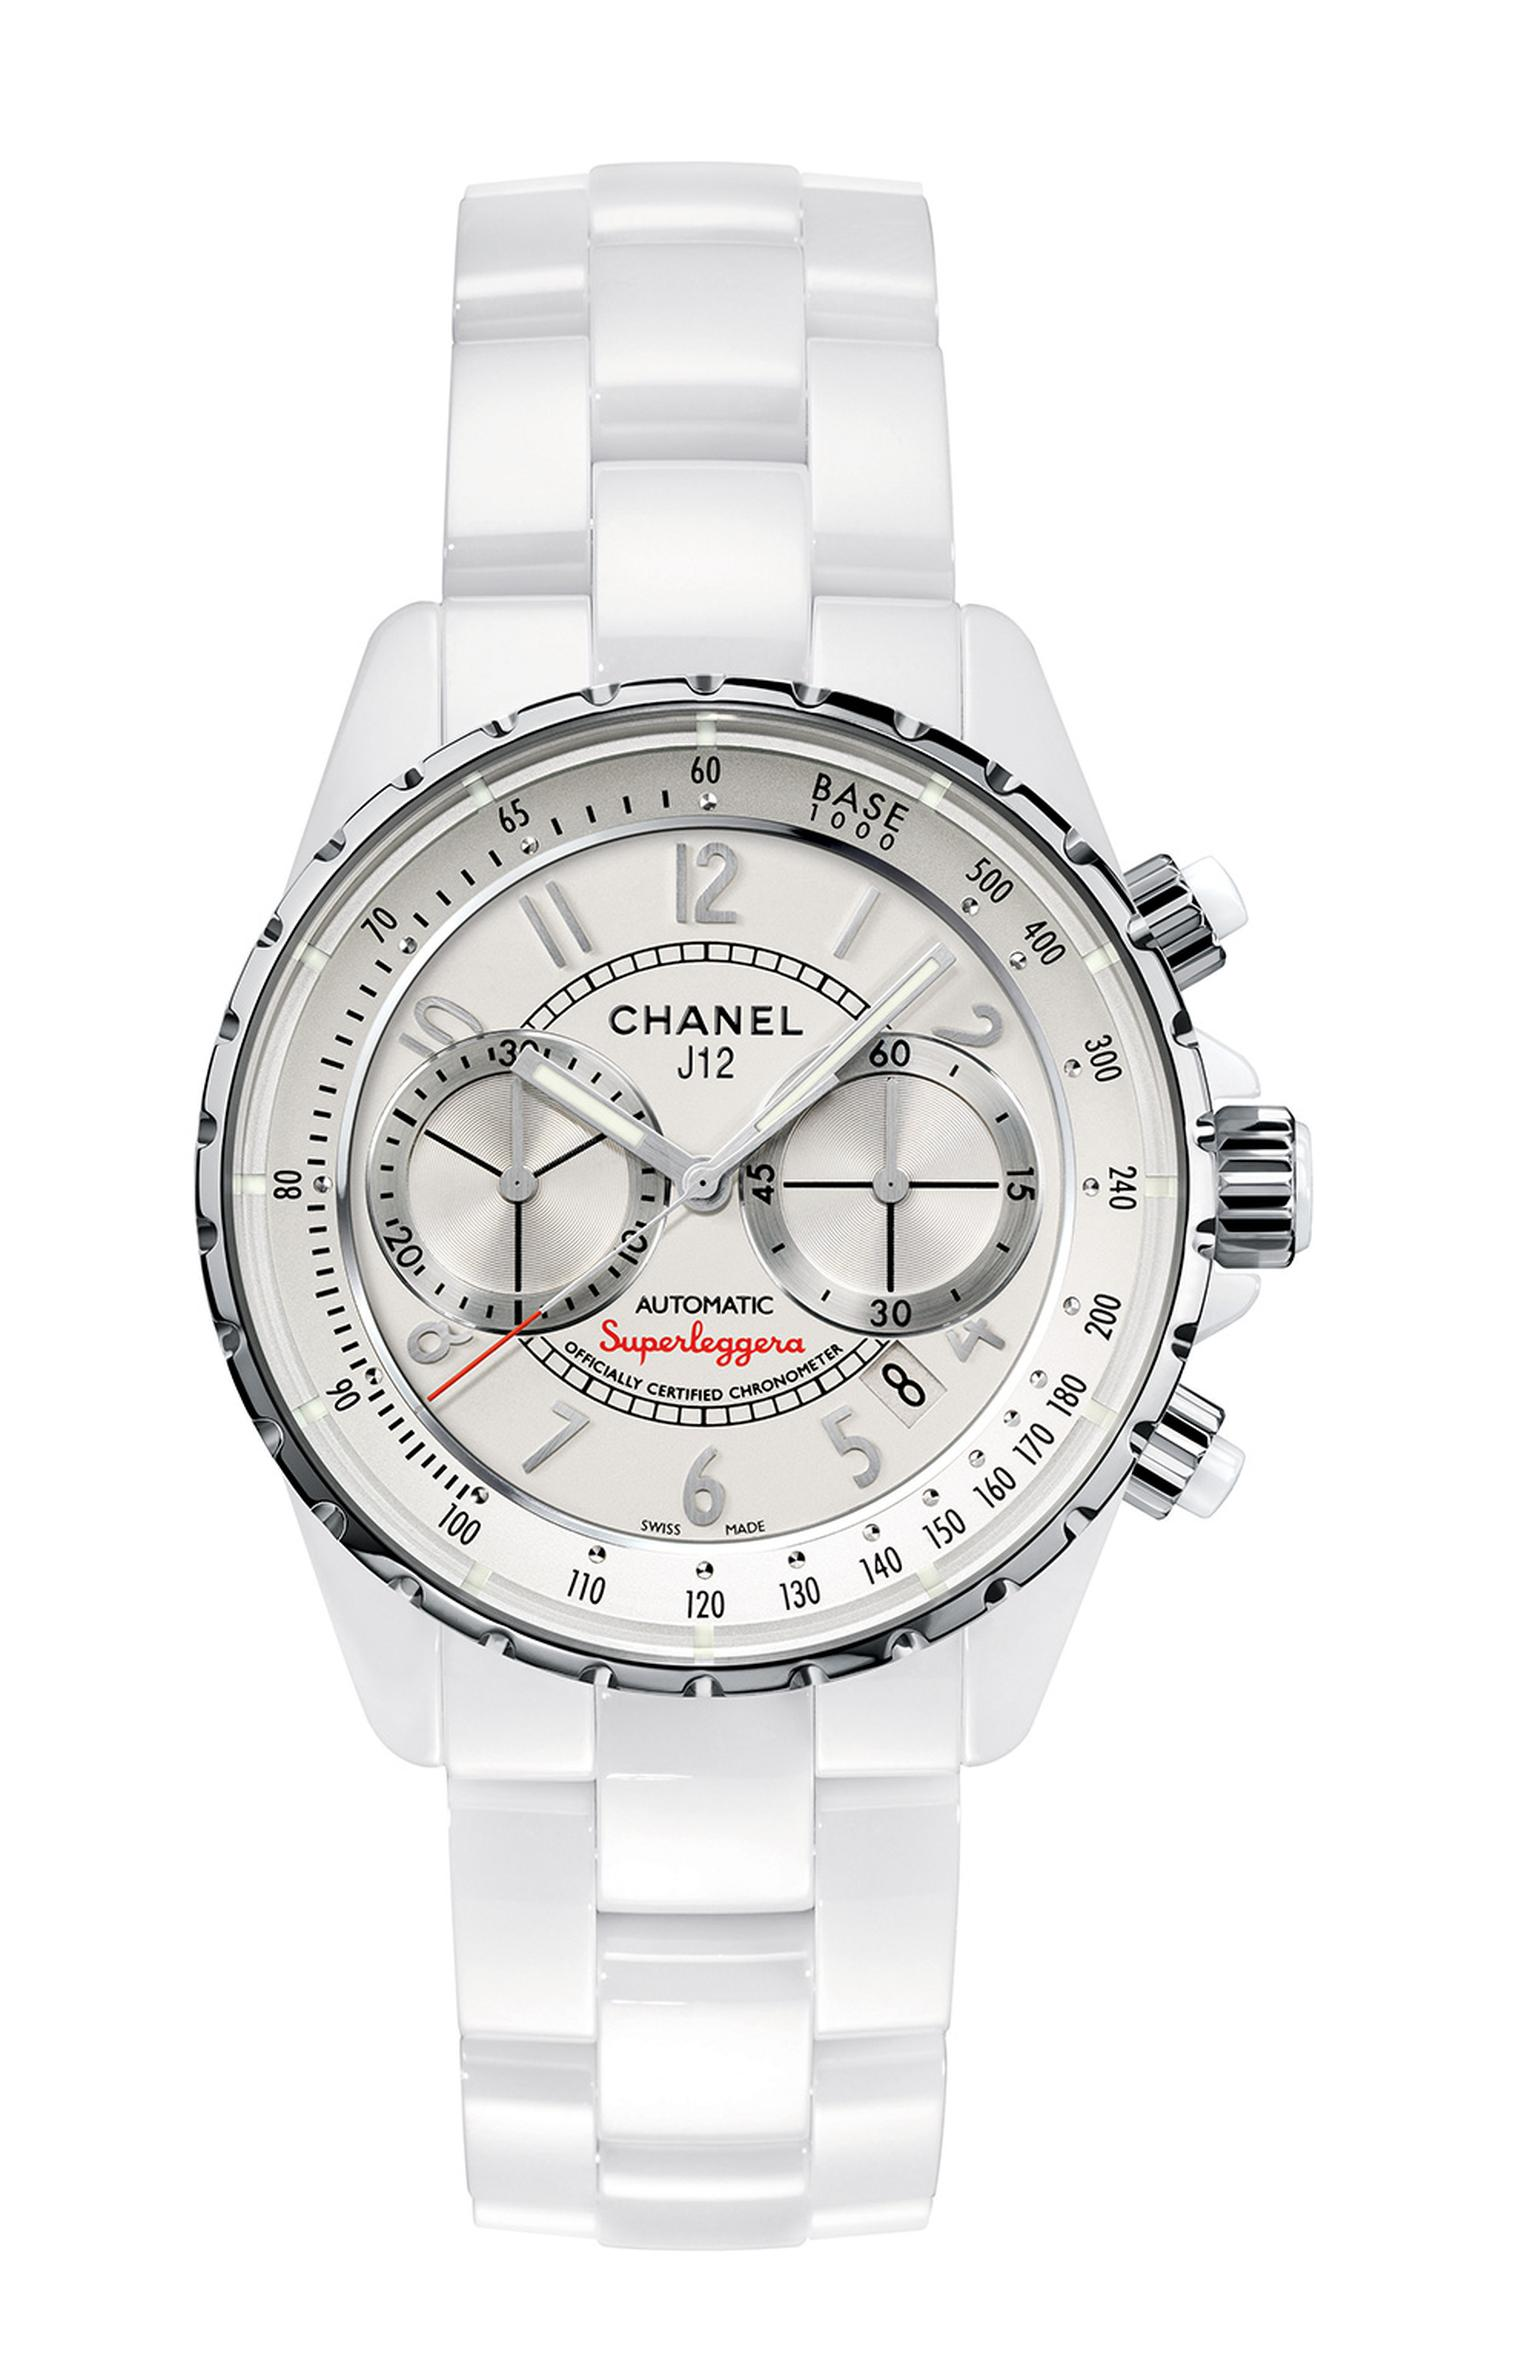 J12-White-Superleggera-Chronograph-41MM-FB-BASELWORLD.jpg